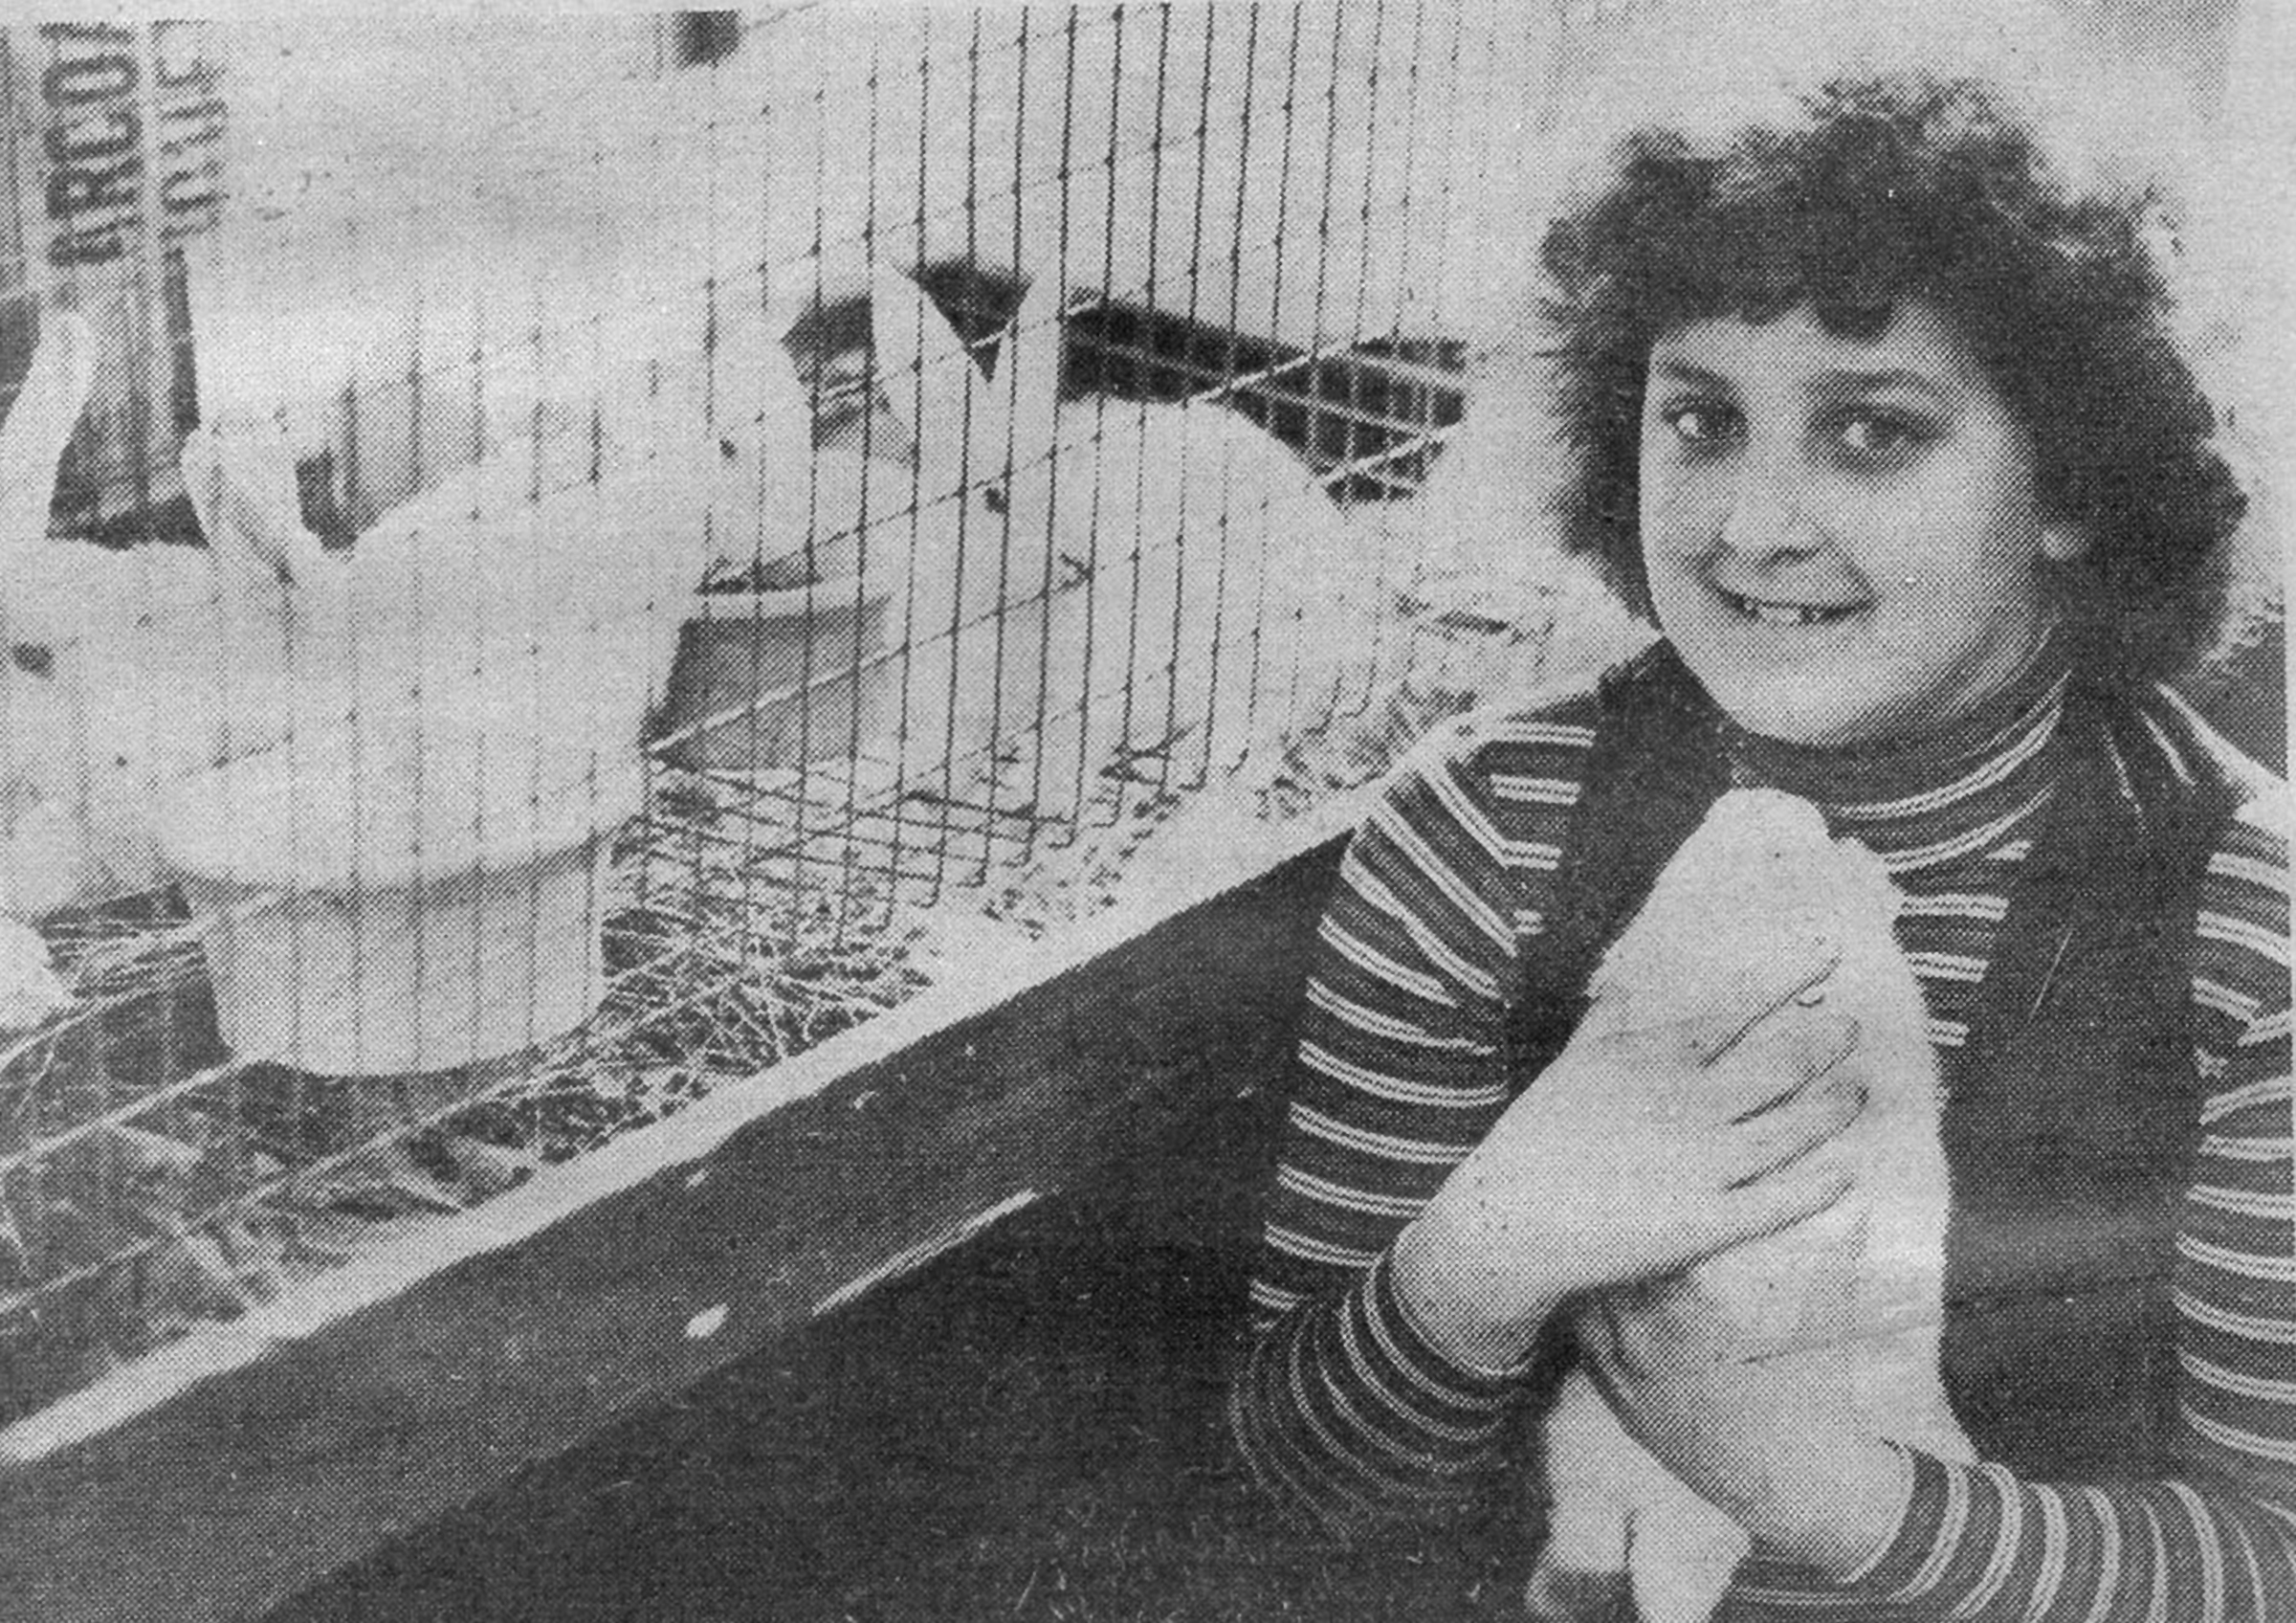 Sag Harbor Variety Store owner Lisa Field as a child when the store sold bunnies at Easter time. COURTESY LISA FIELD